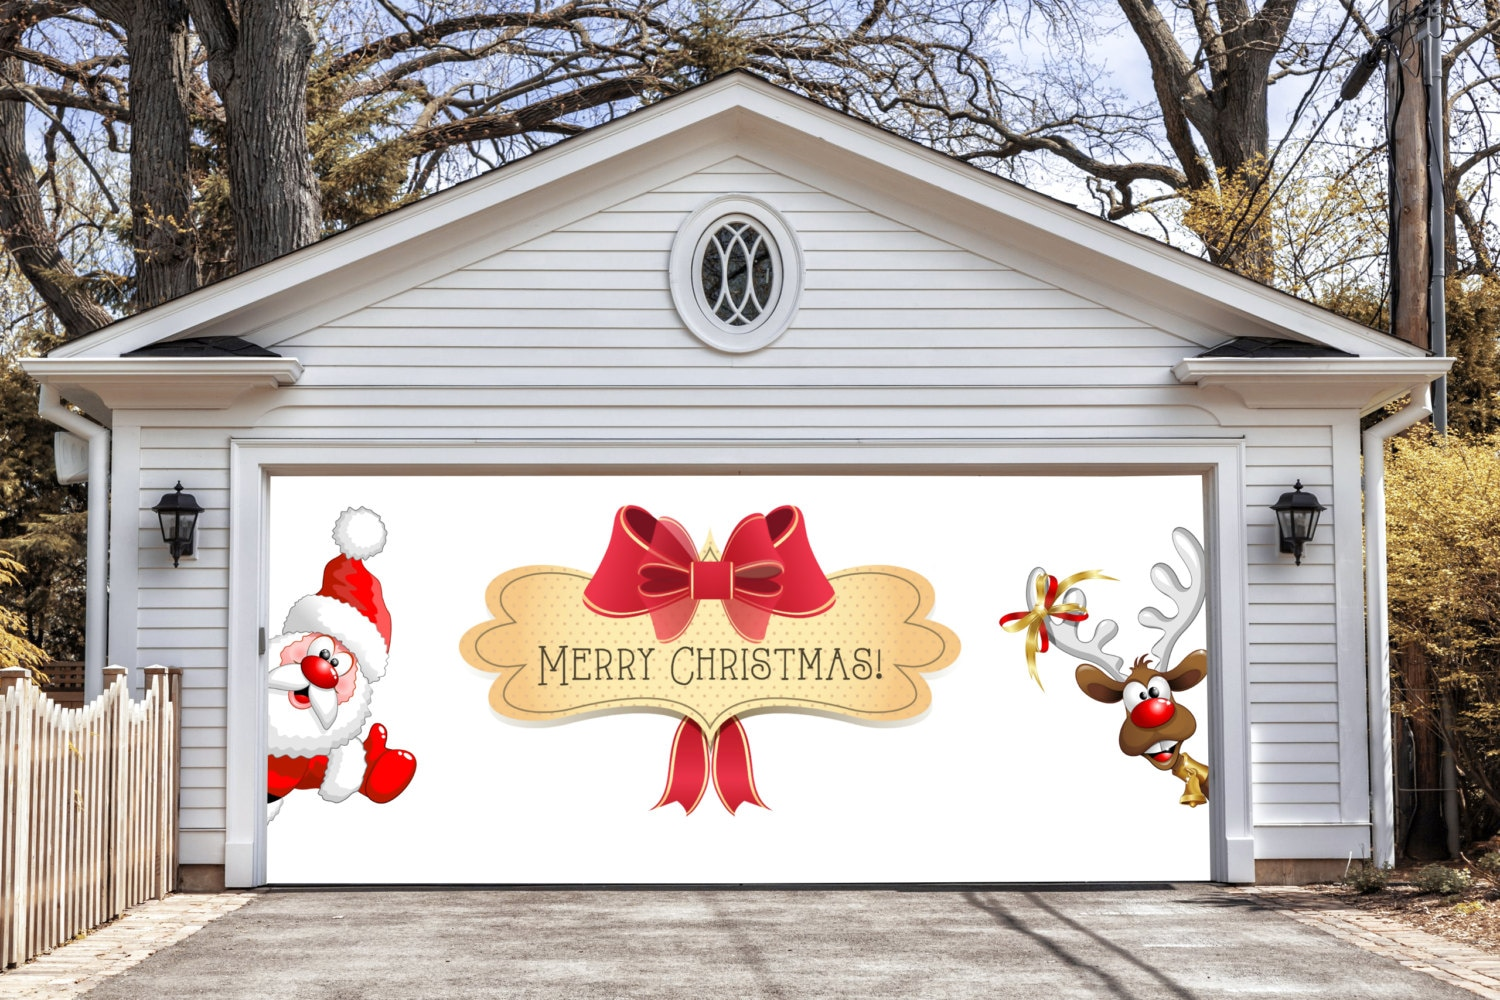 Merry Christmas Garage Door Covers 3d Banners By Decalhouse